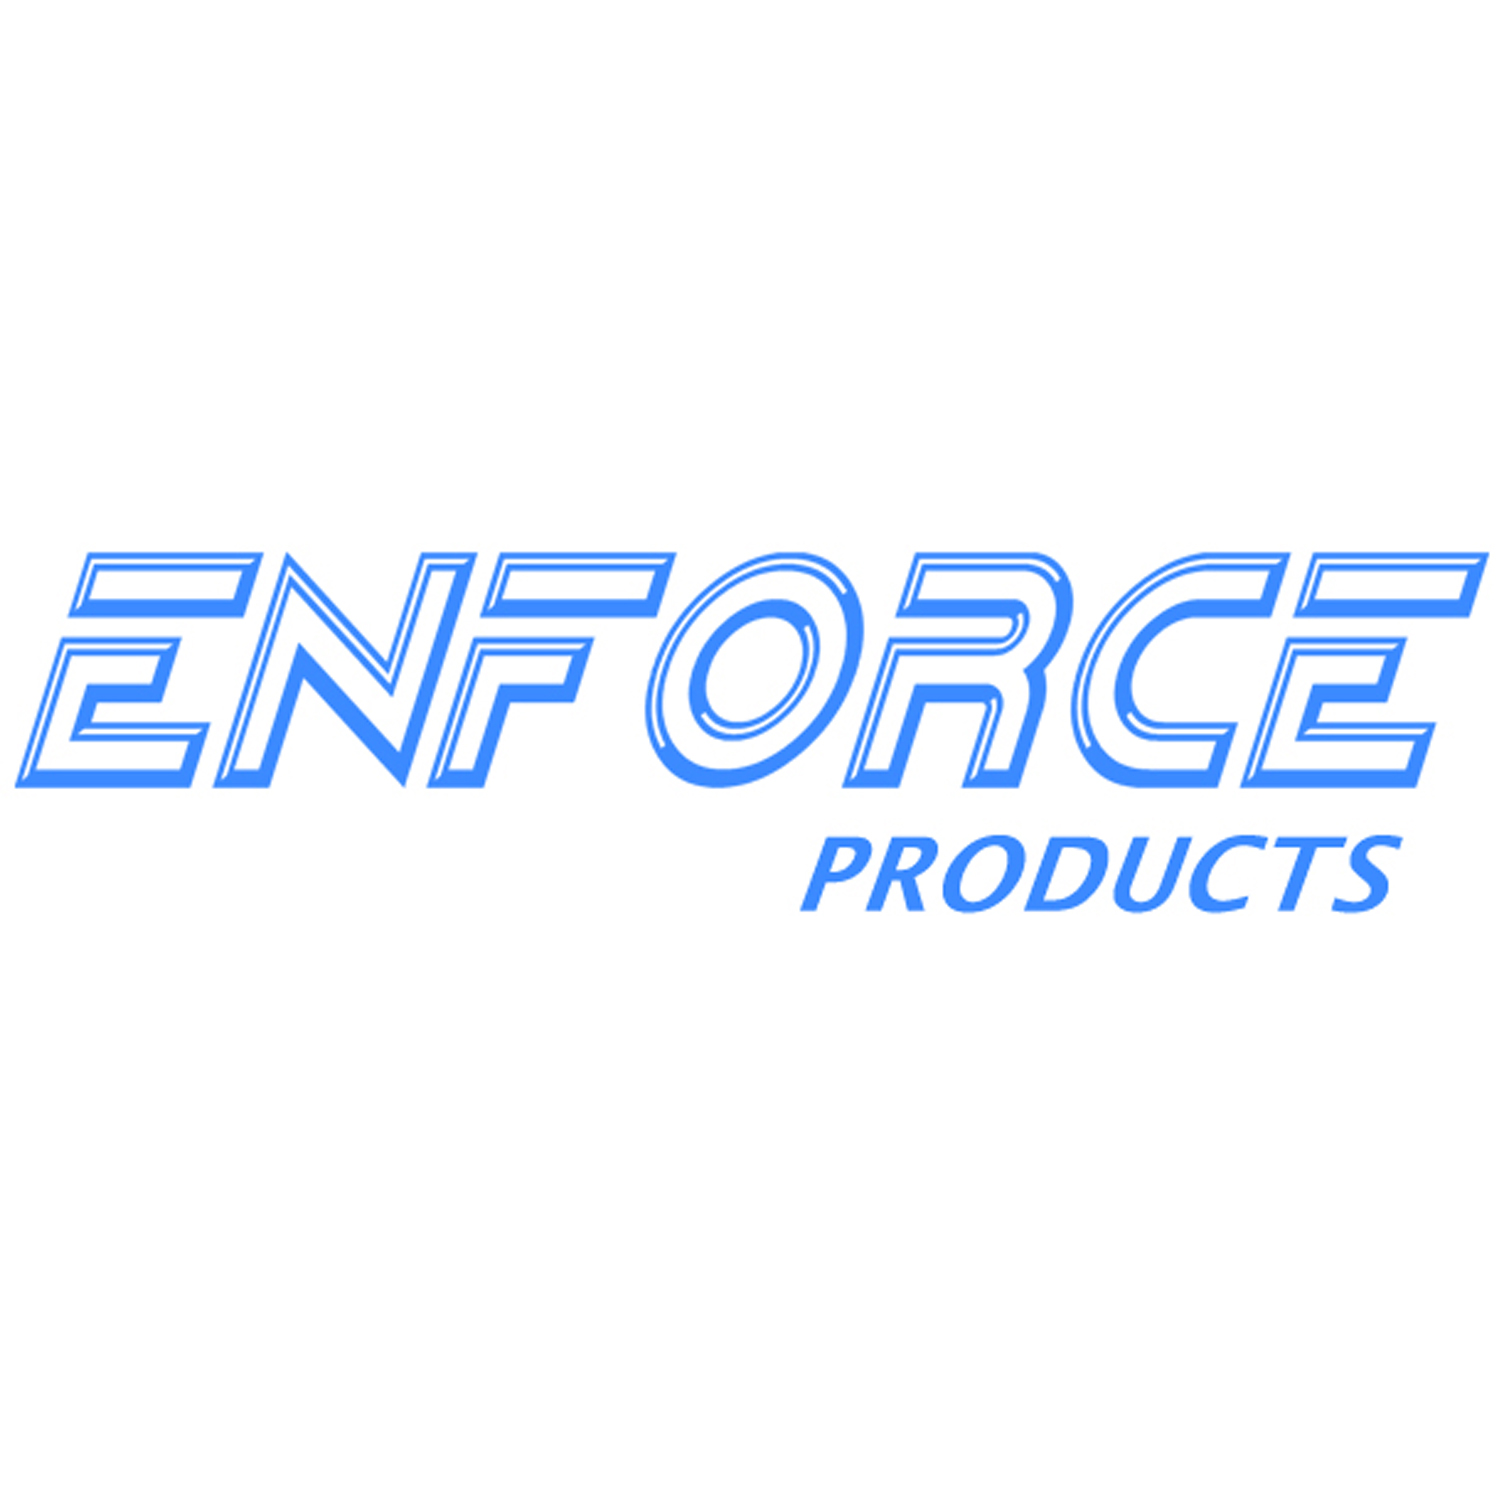 Enforce Products - An industry leader for manufacturing tire products, pipe joint lubricants, and release agents for the concrete and asphalt industries. A division of Imperial Western Products.